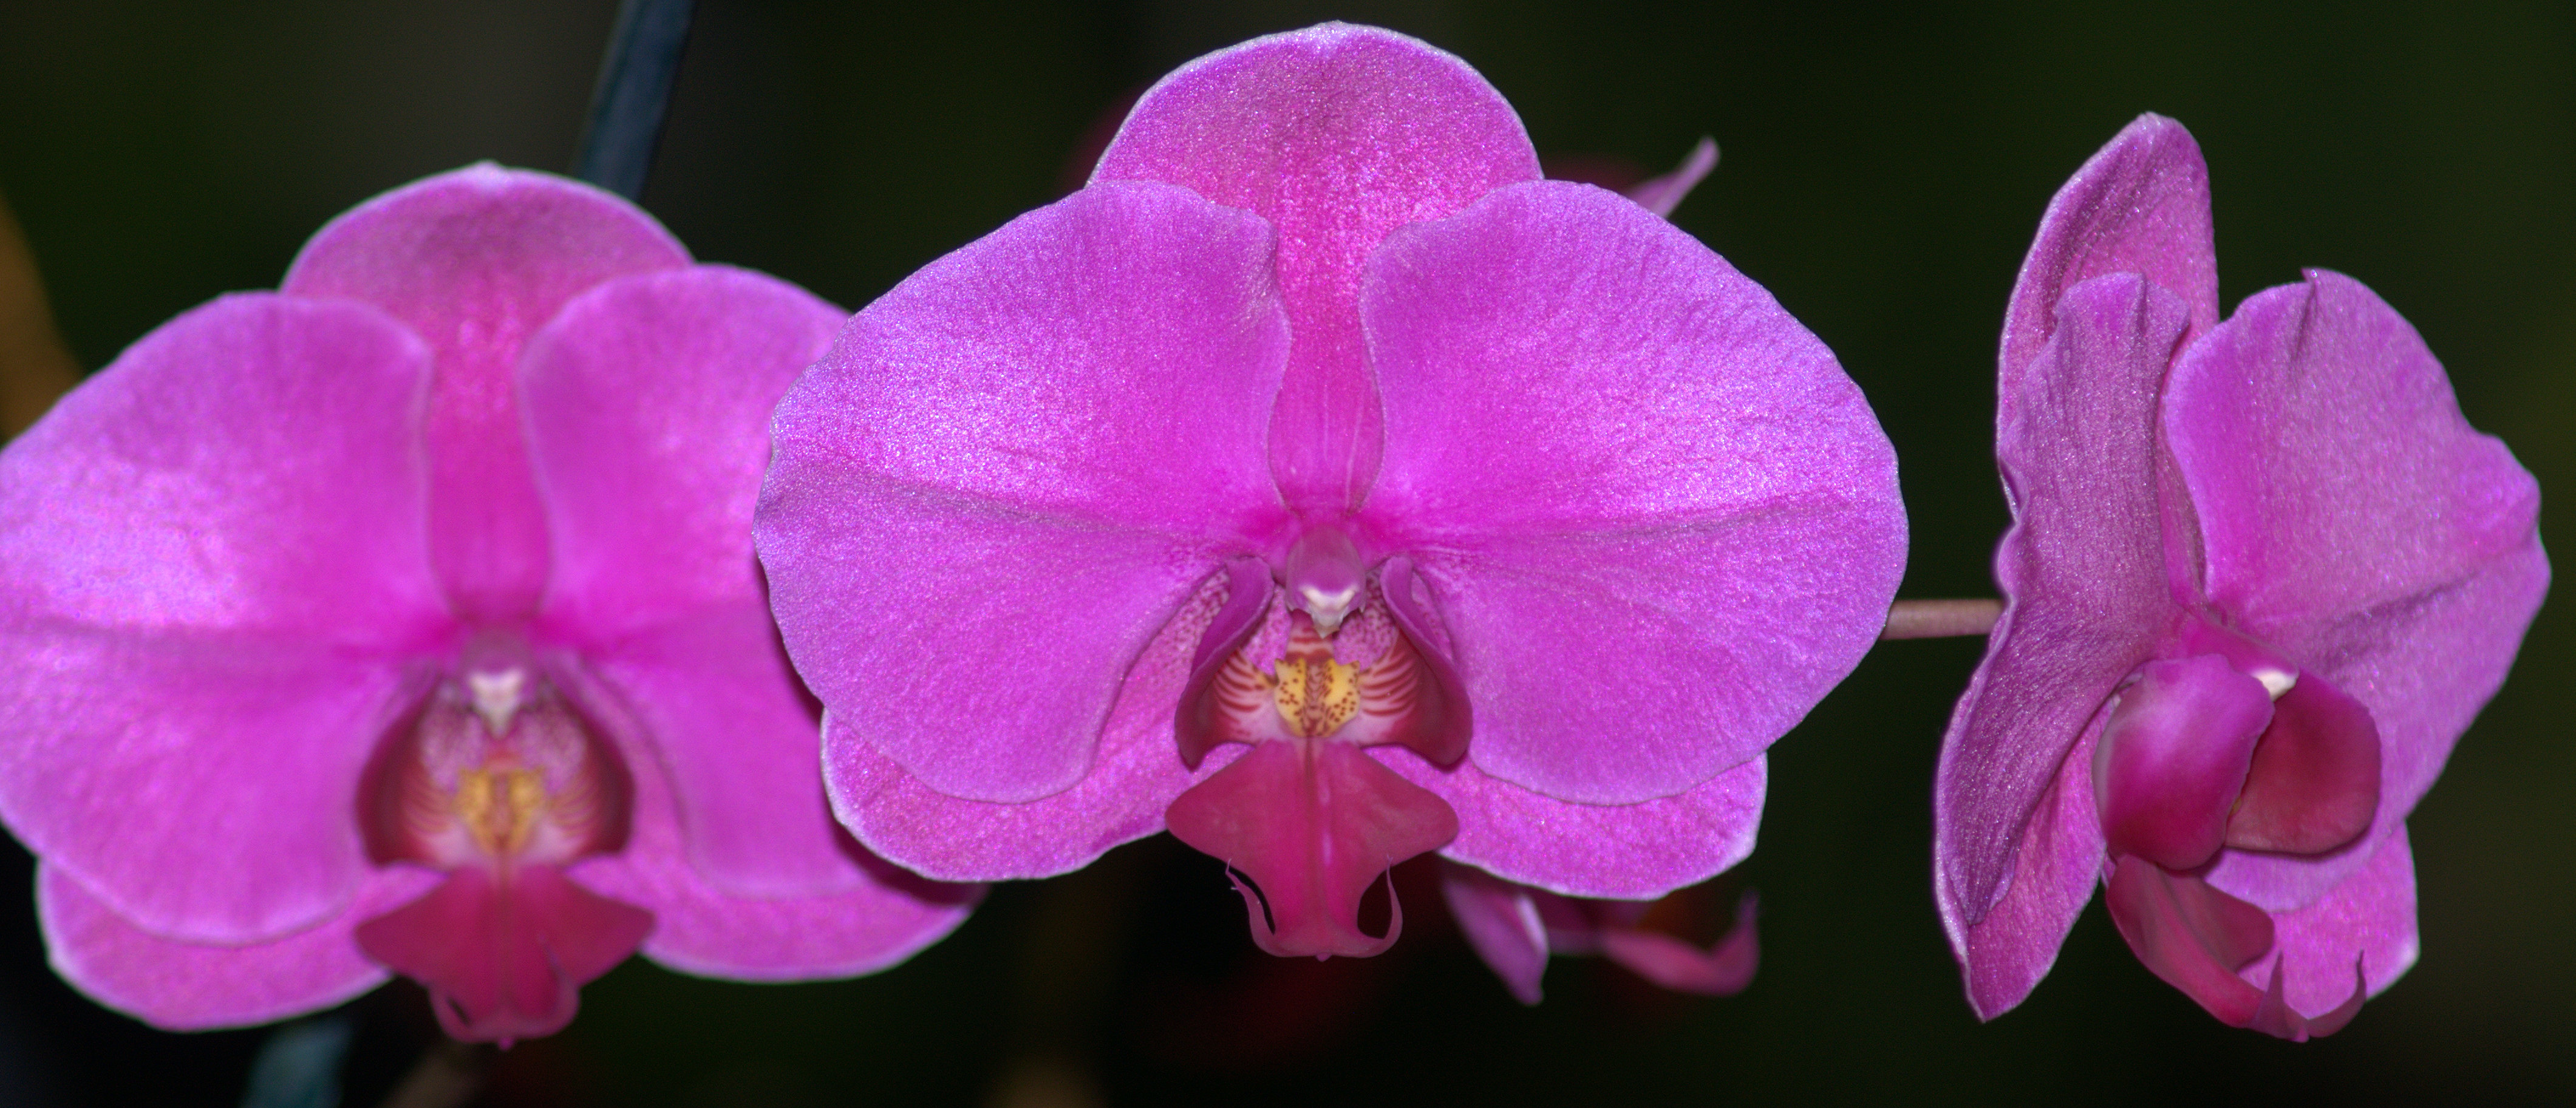 Mobile Area Orchid Society's 43rd Annual Orchid Show and Sale